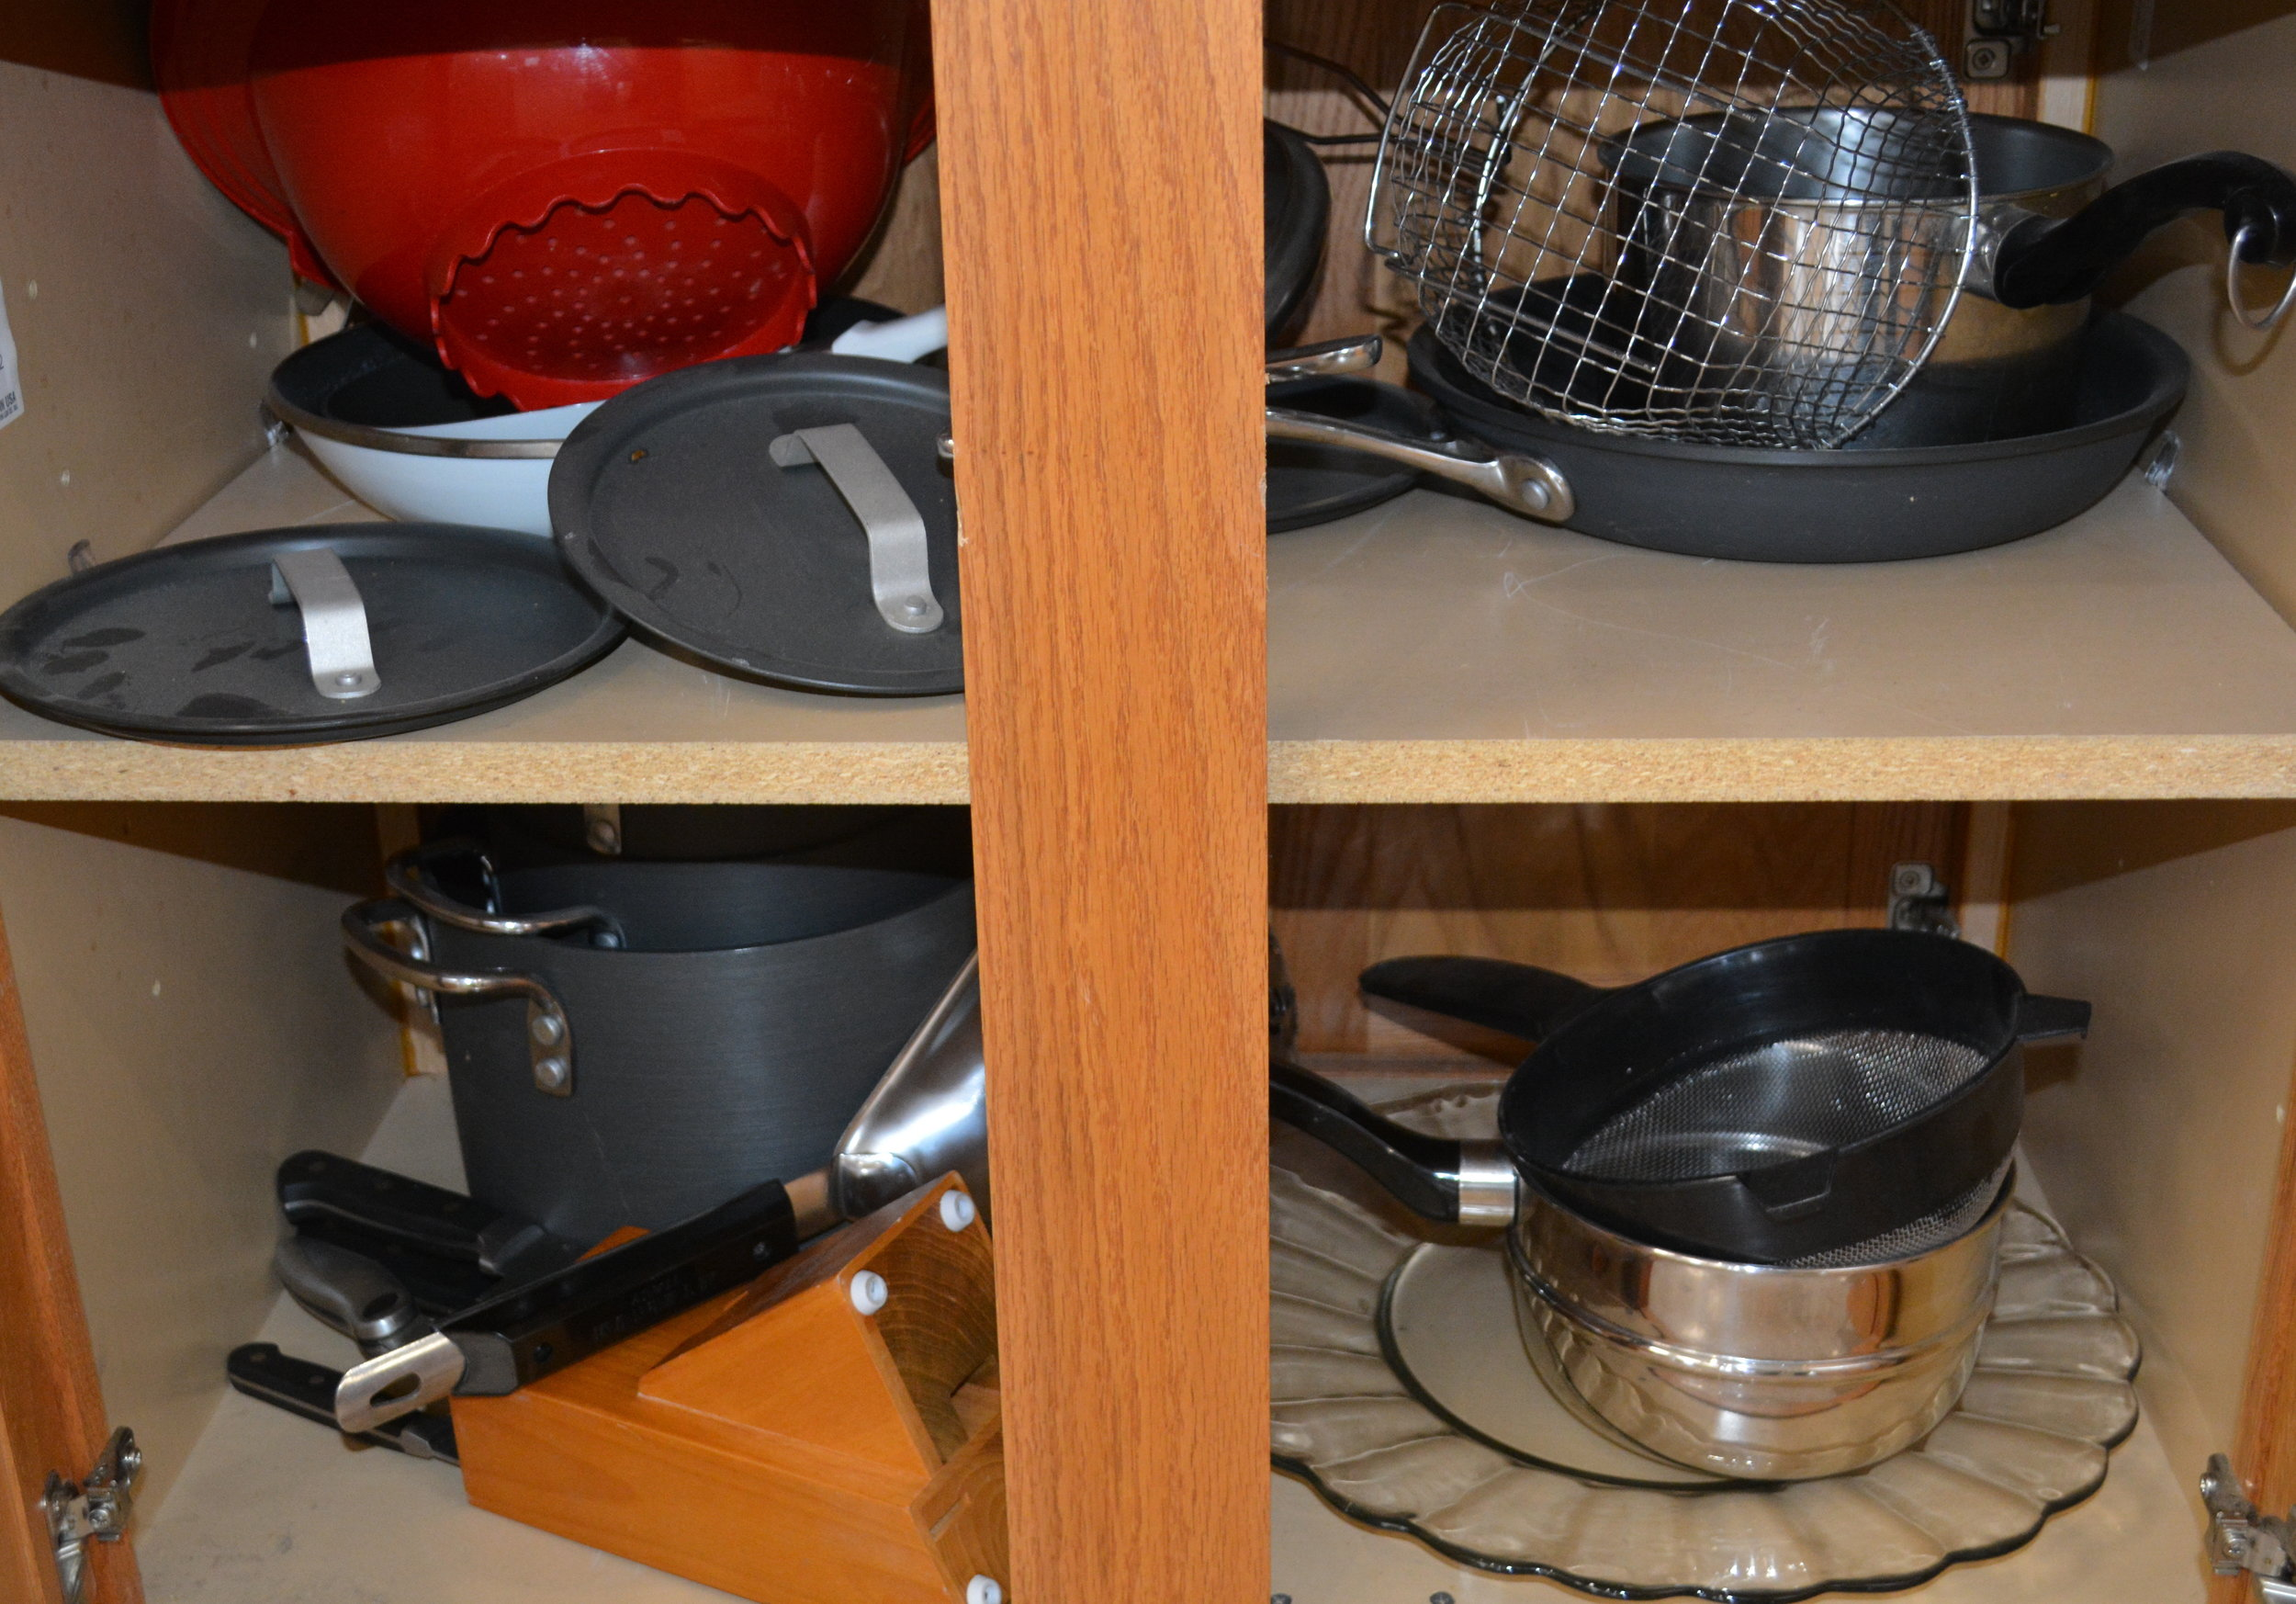 The kitchen carries a selection of pots and pans.